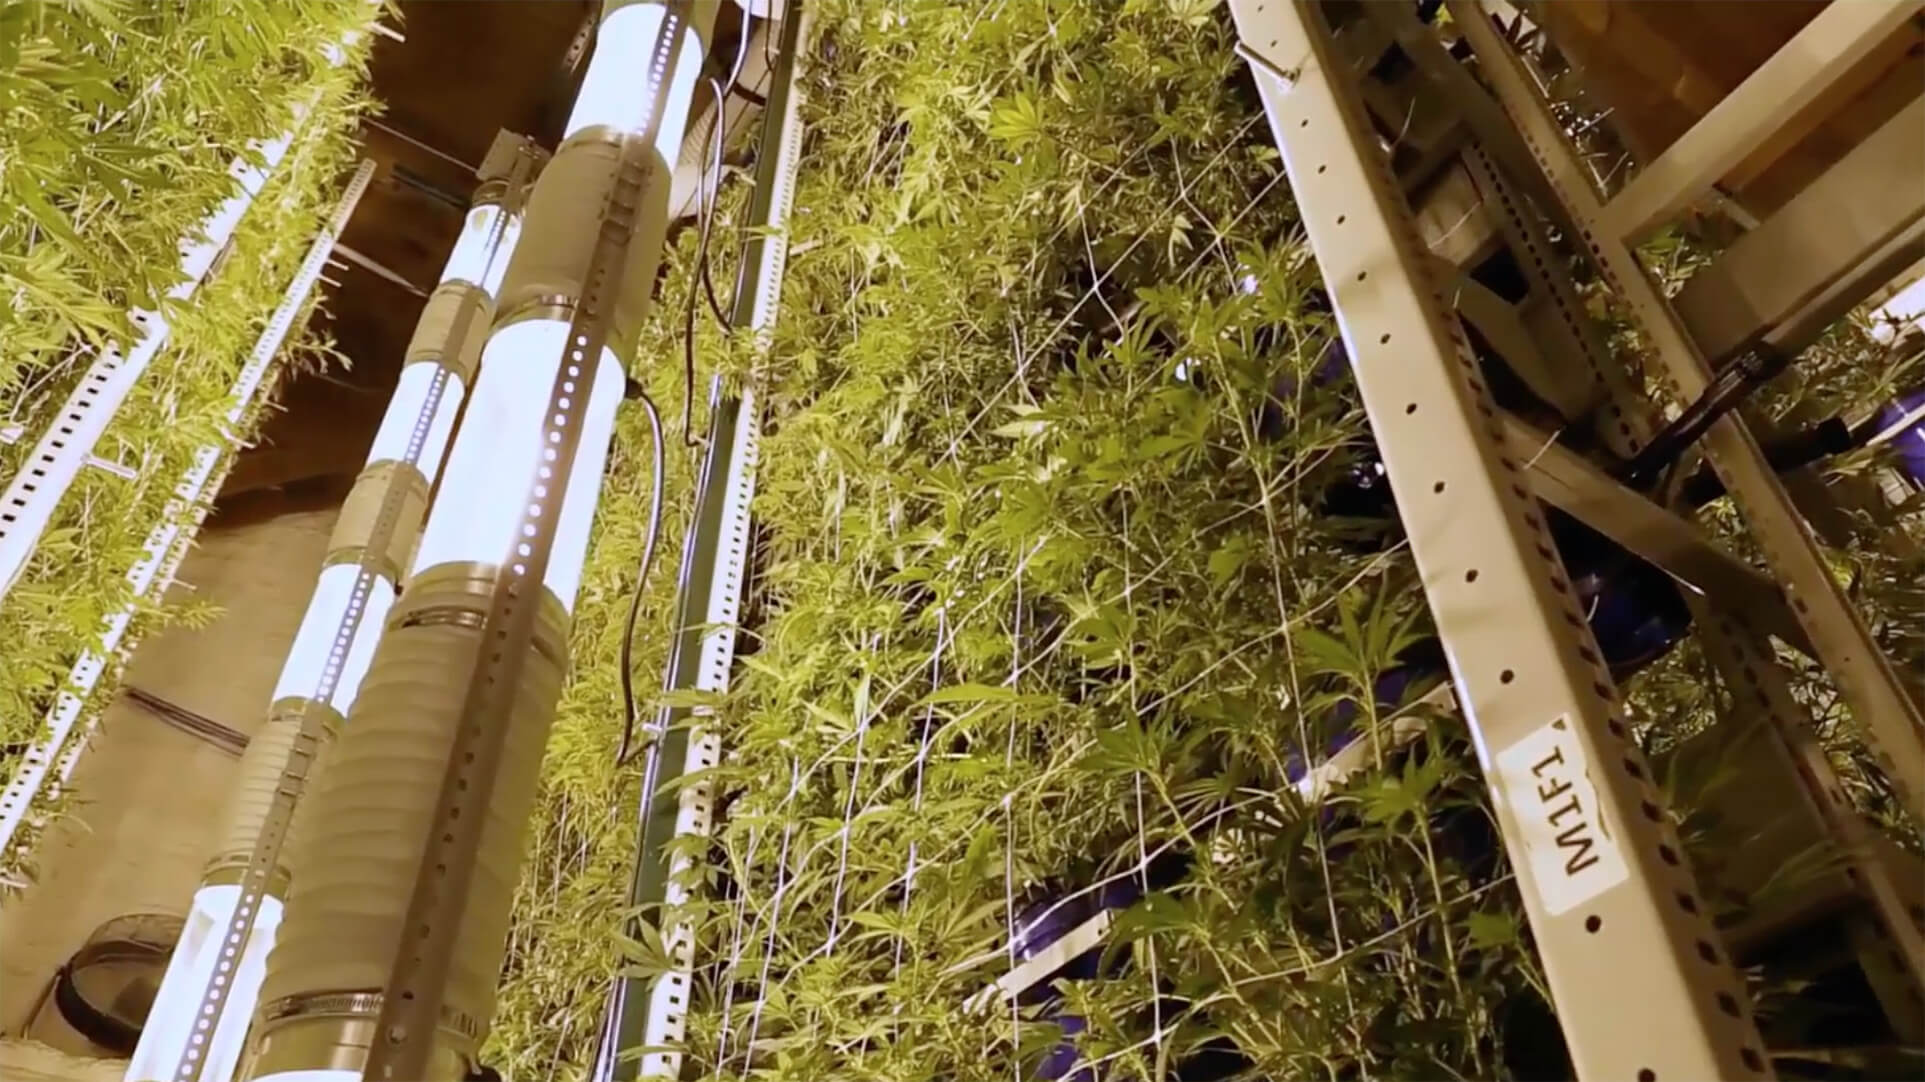 Vertical Growing: A Spatial Gardening Technique | Cannabis Industry ...